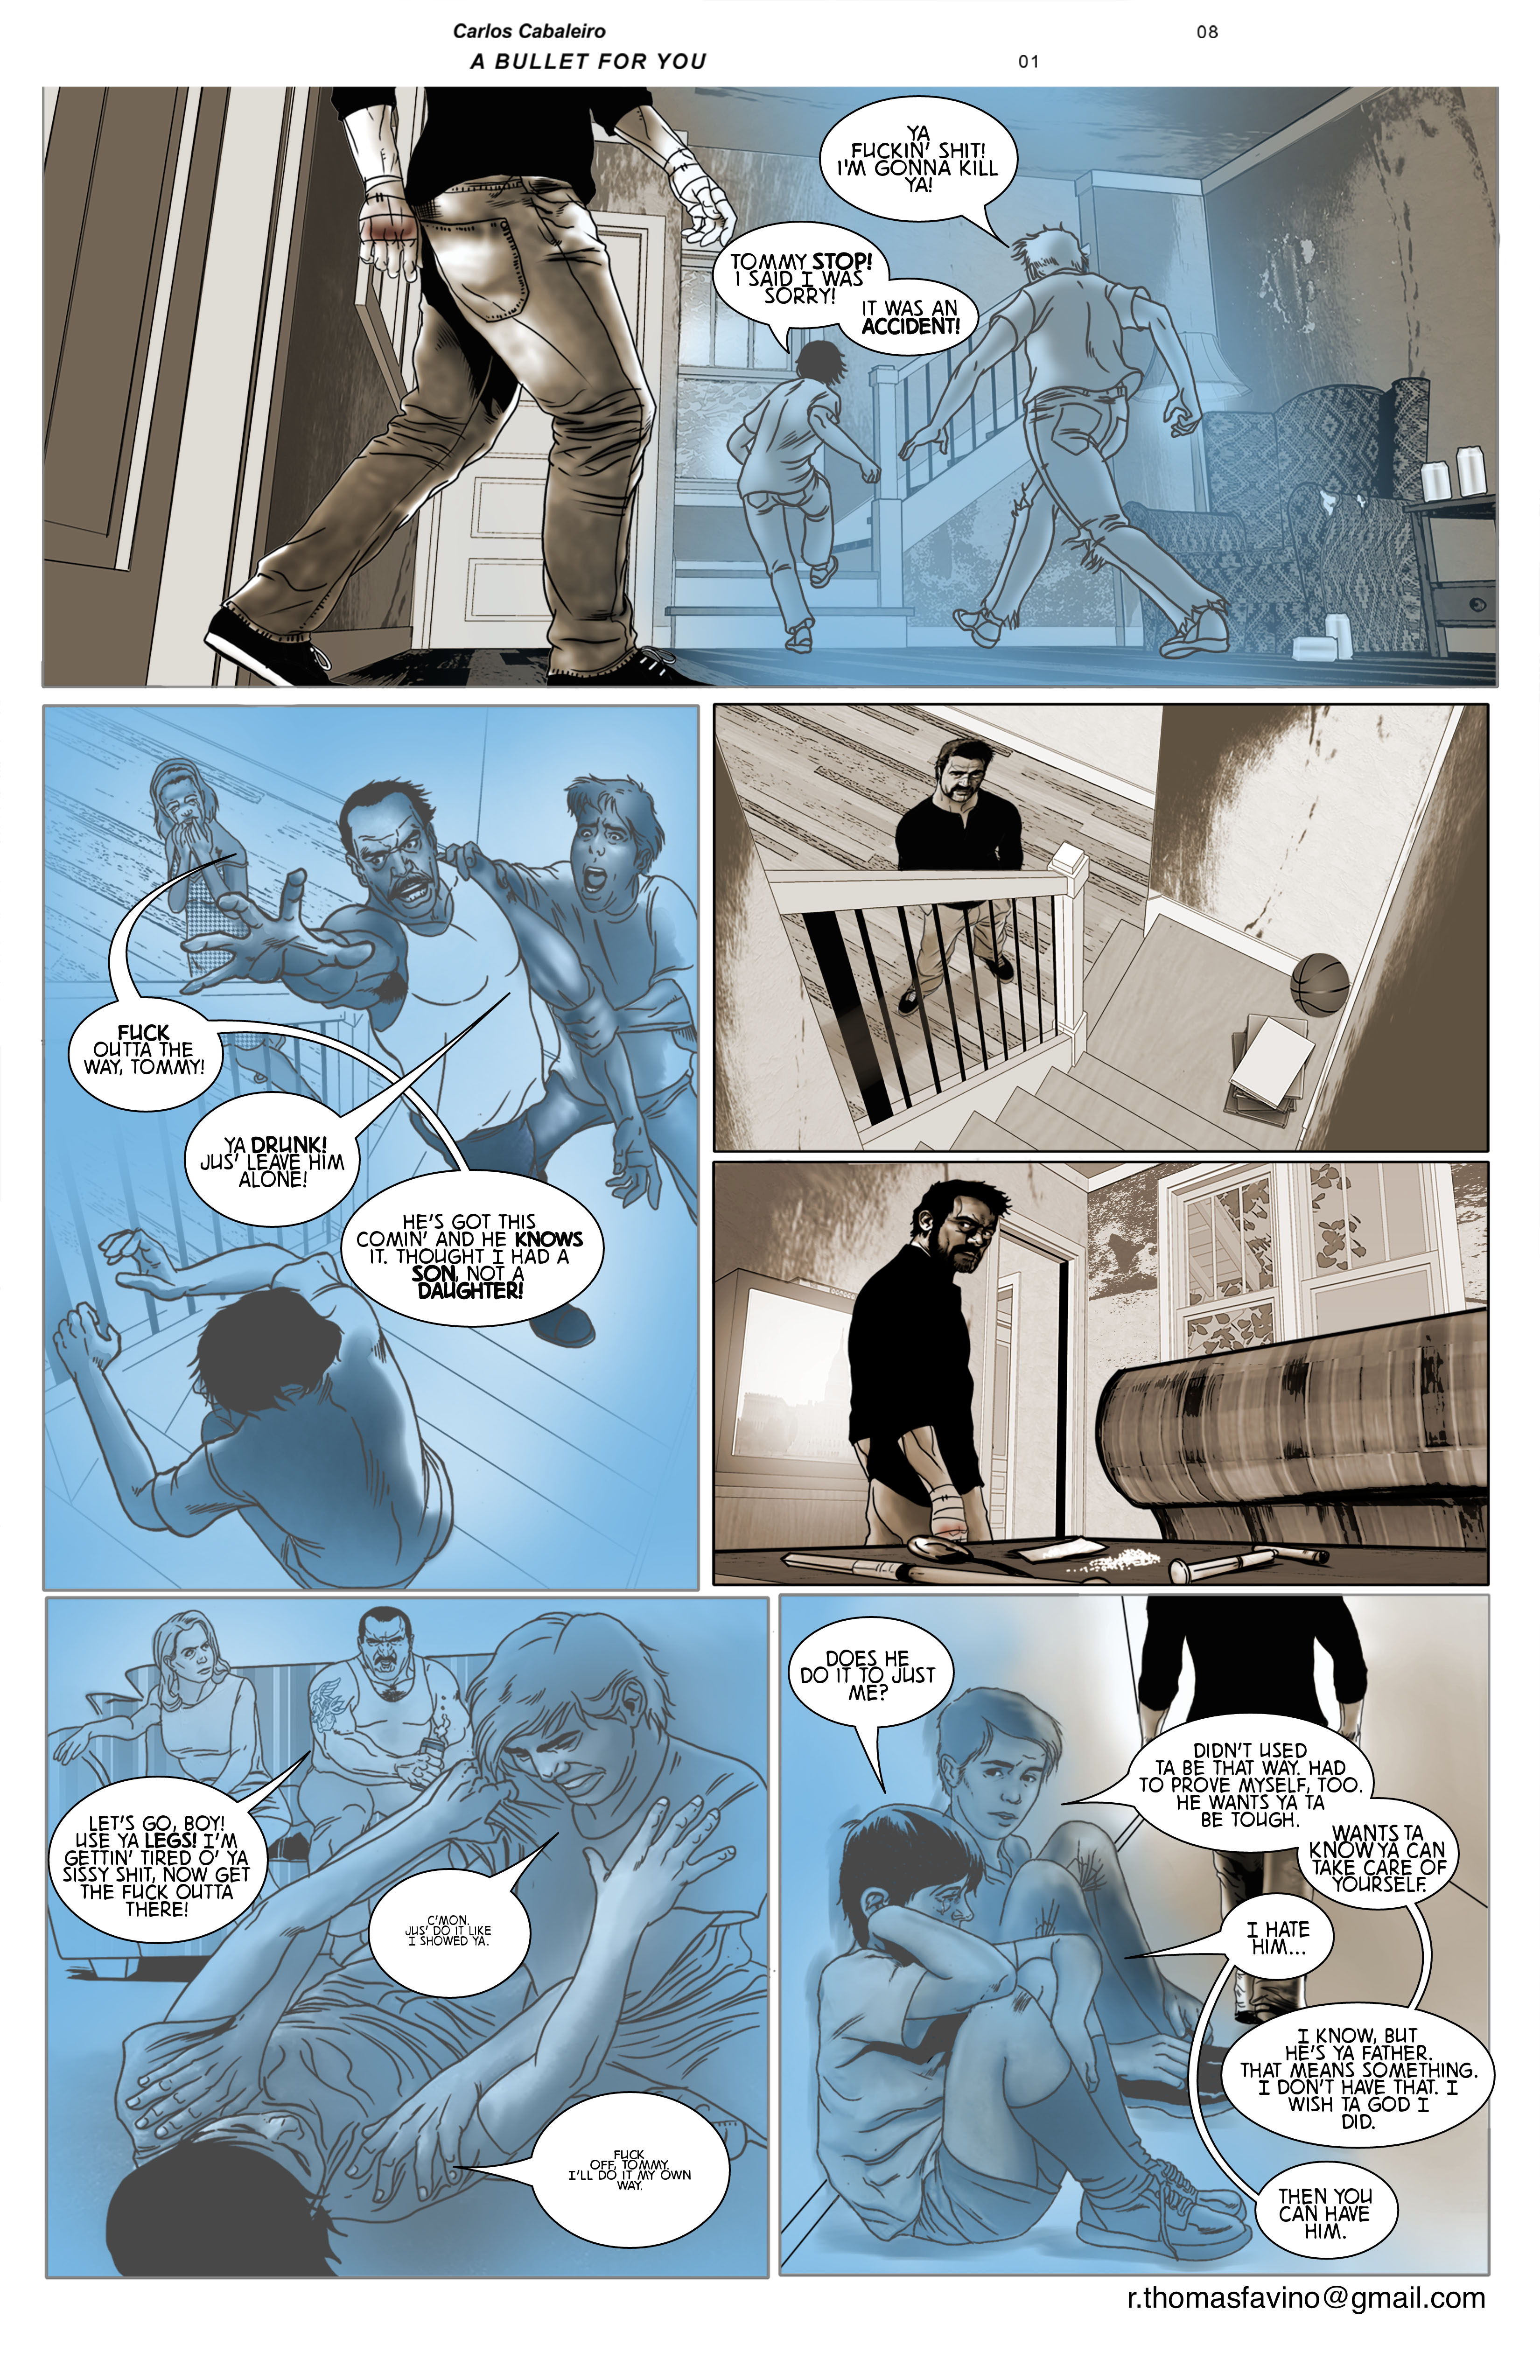 A Bullet for You #1 Page 8